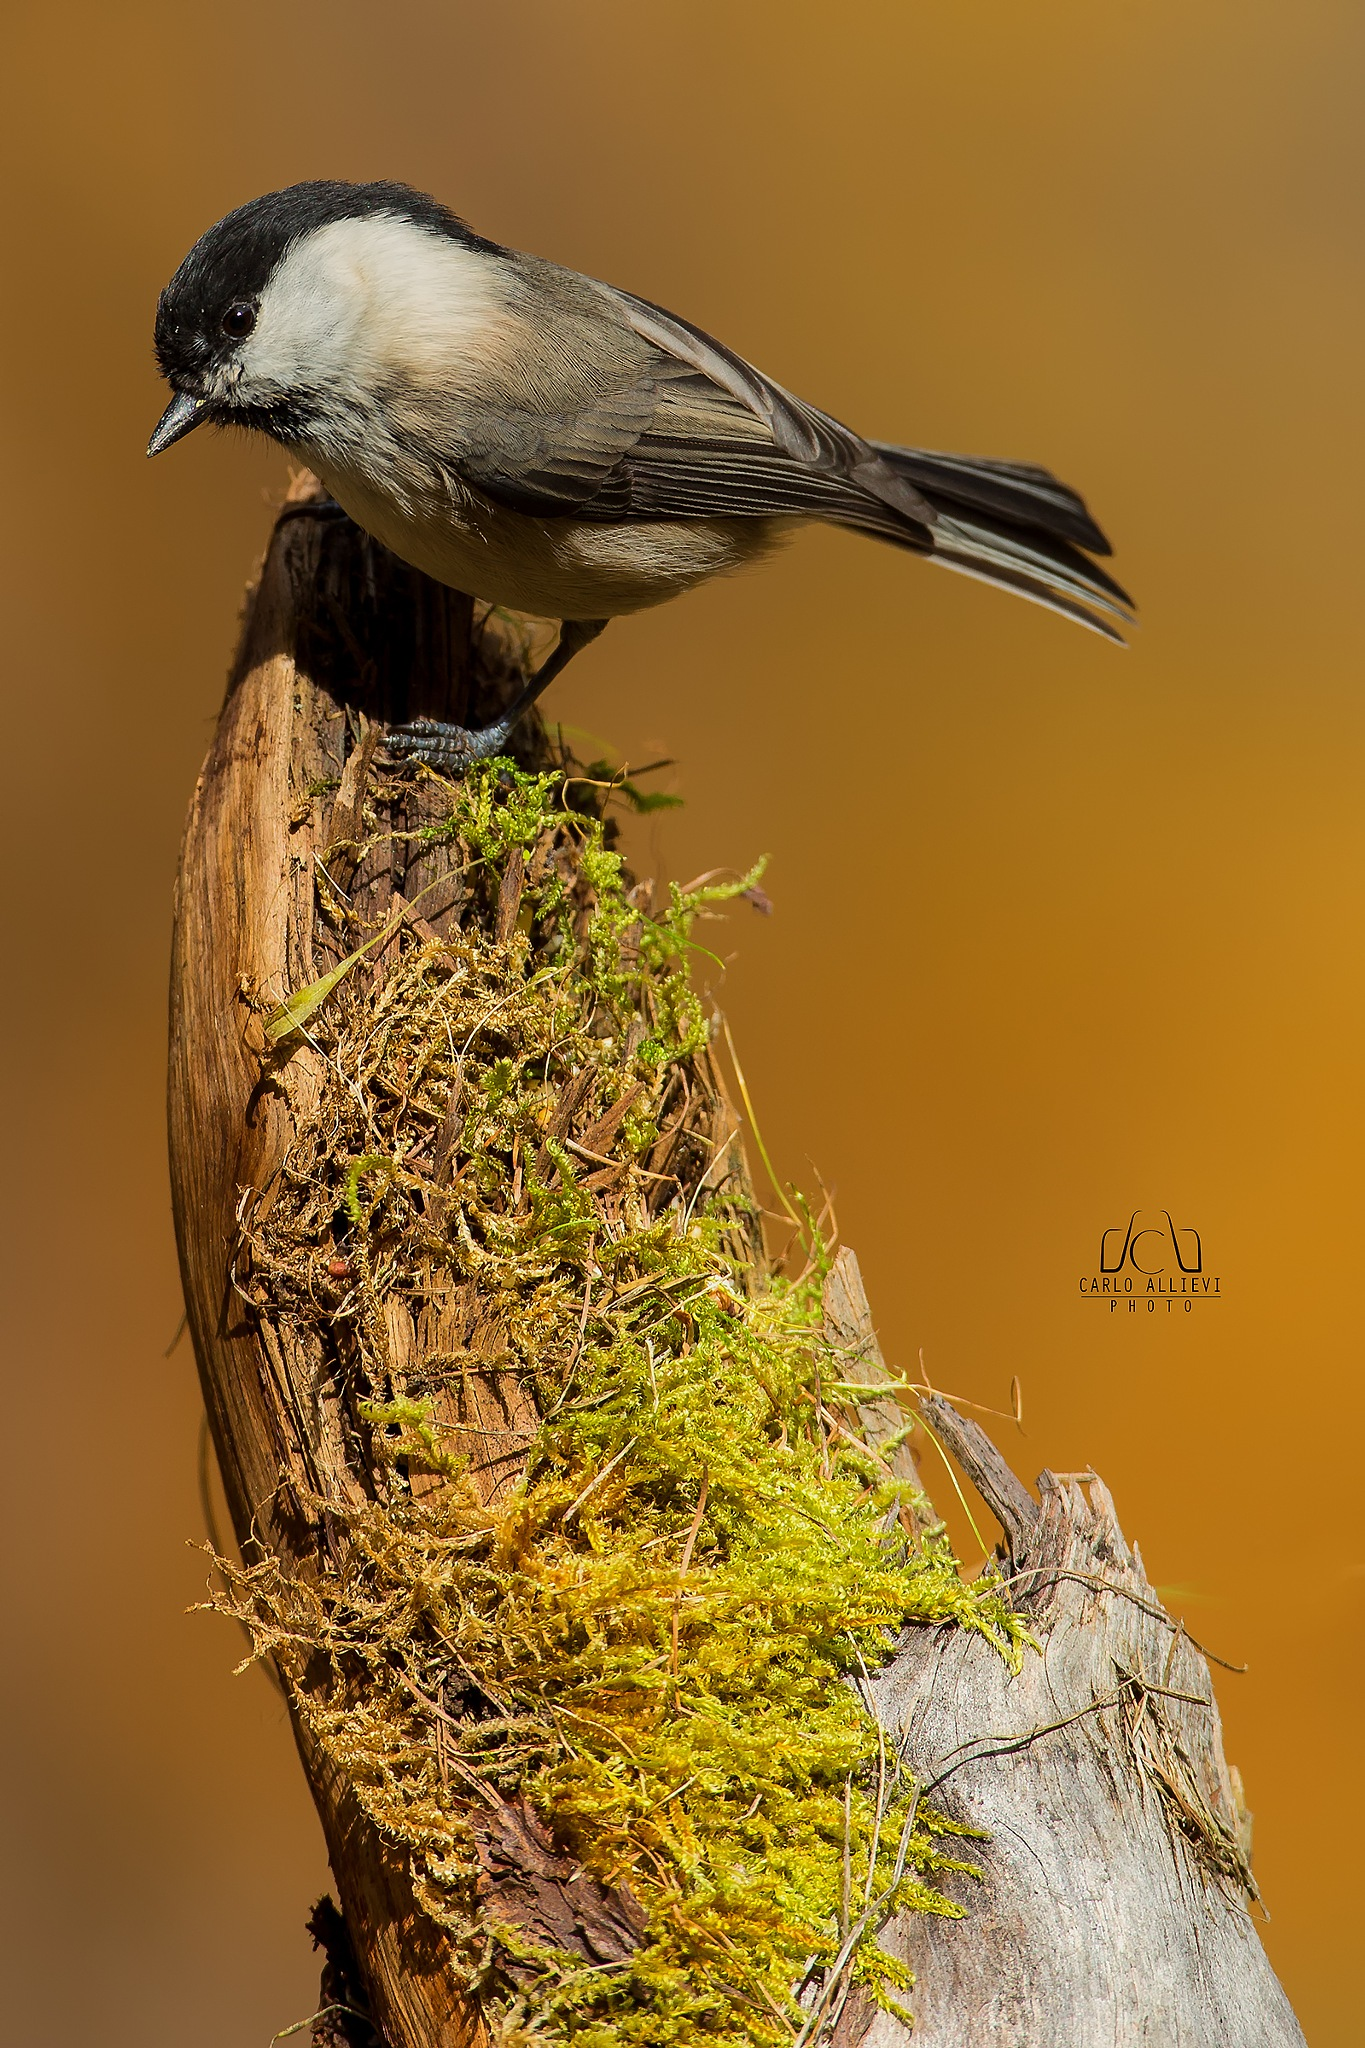 Willow Tit by Carlo Allievi